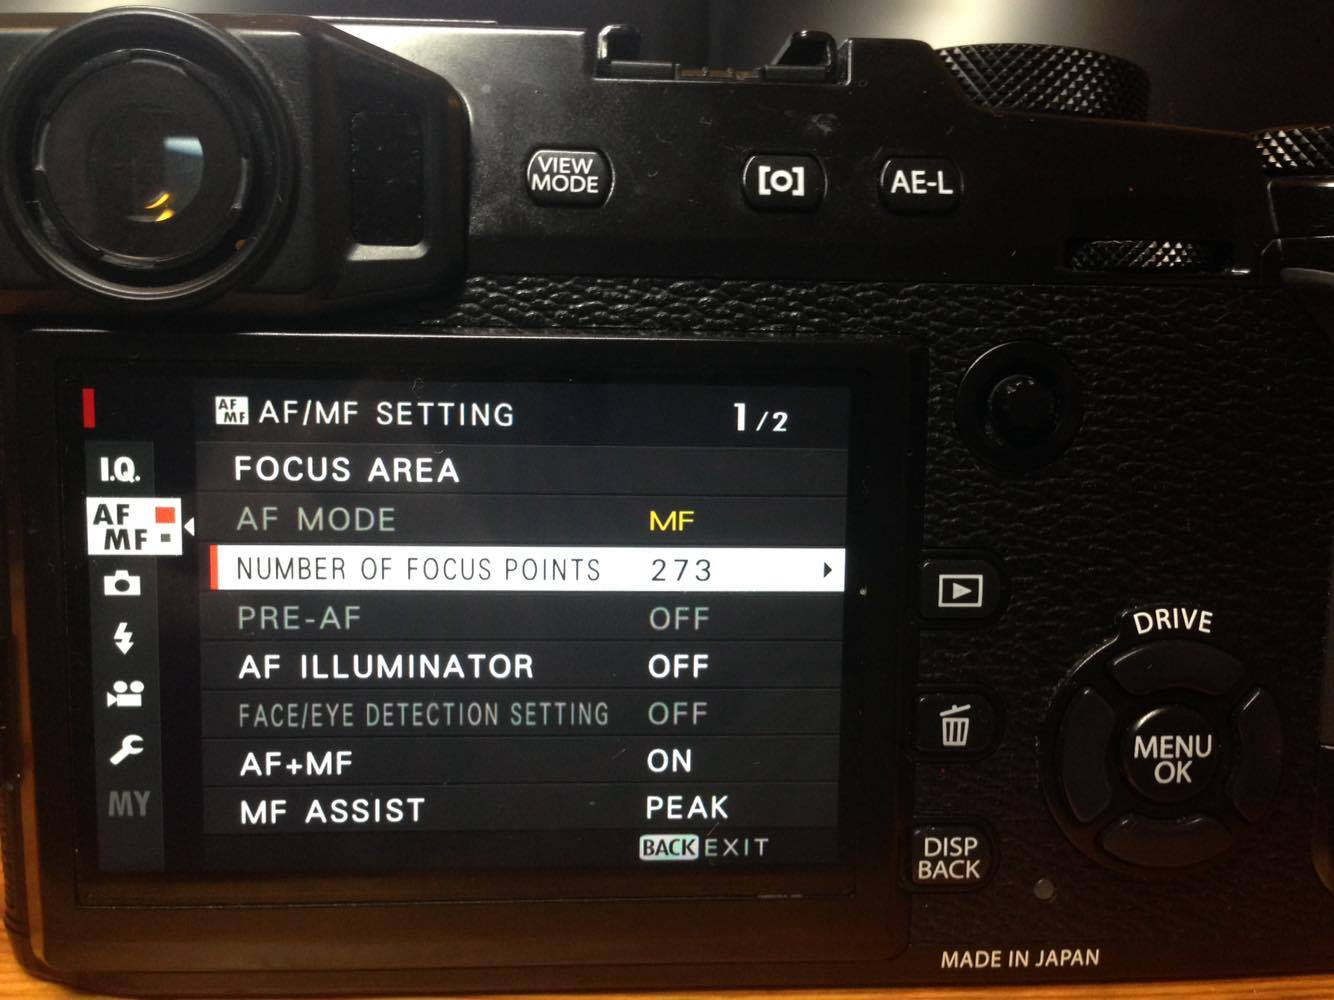 Dave Kai-Piper Extensive Review of the Fuji X-Pro2